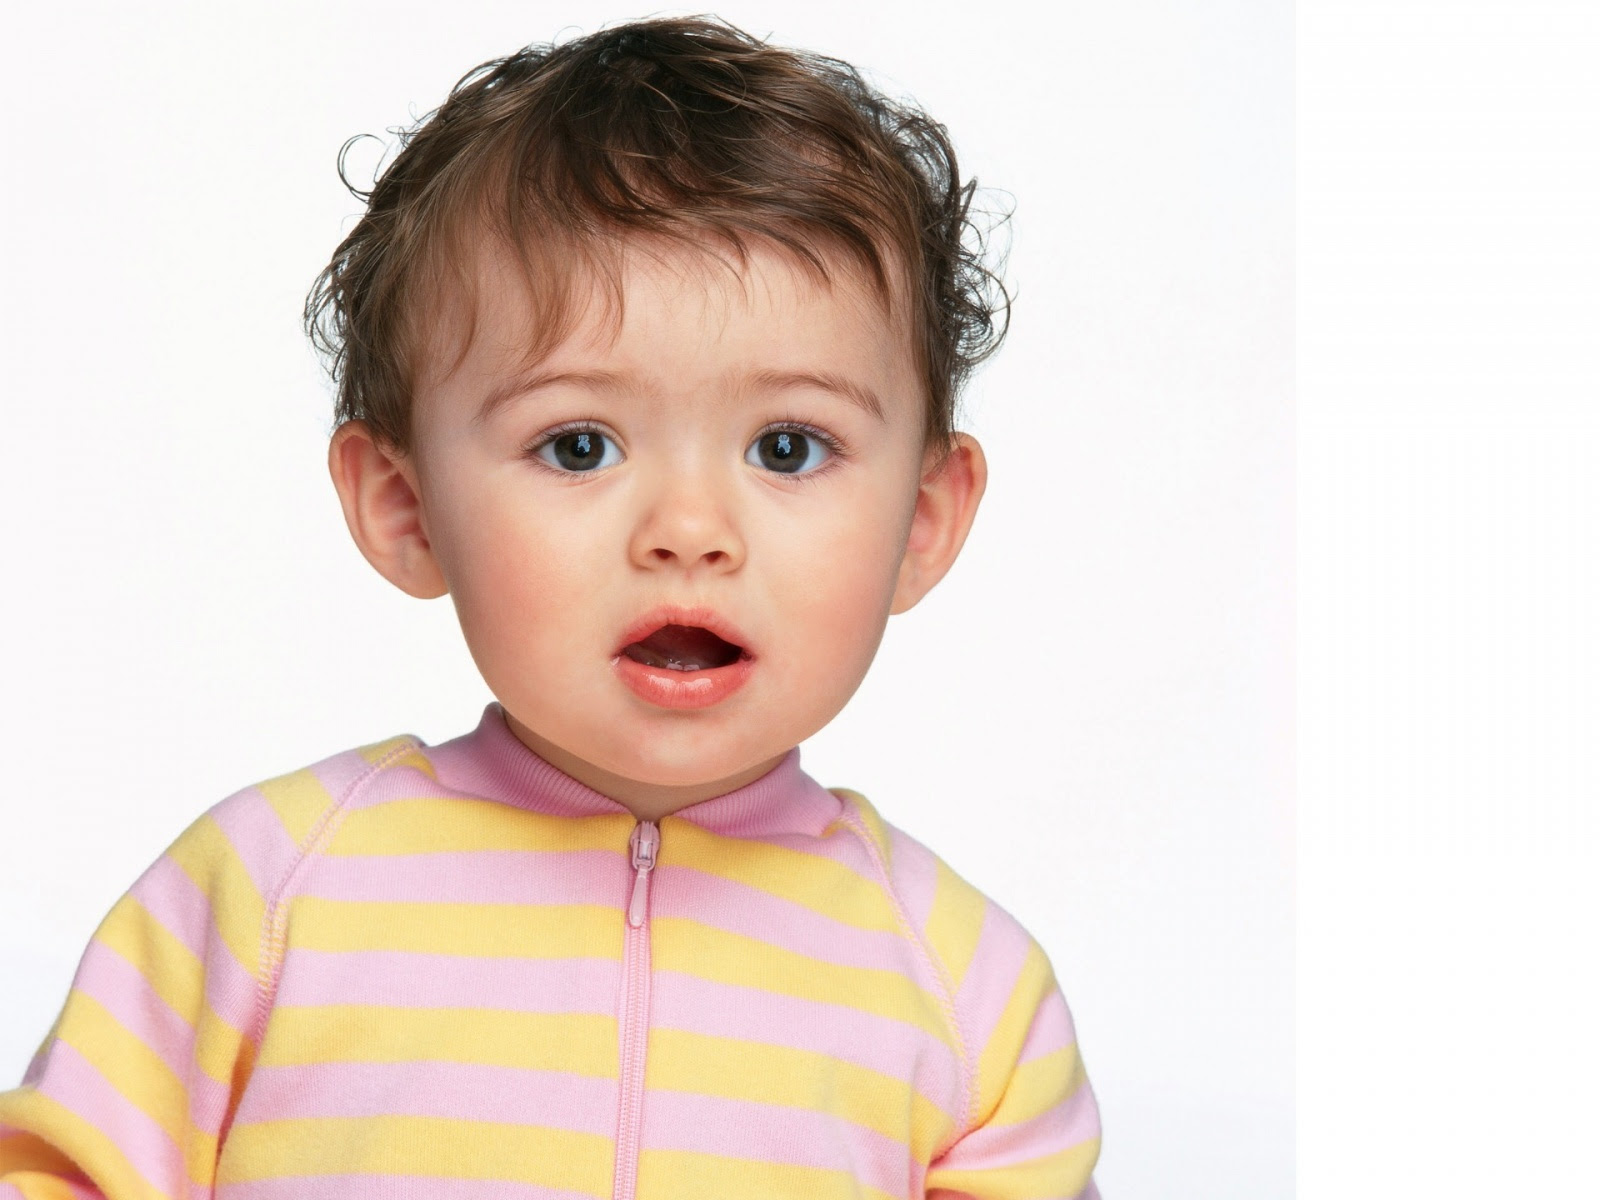 Cute Little Babies Hq 3 Wallpapers In Jpg Format For Free Download